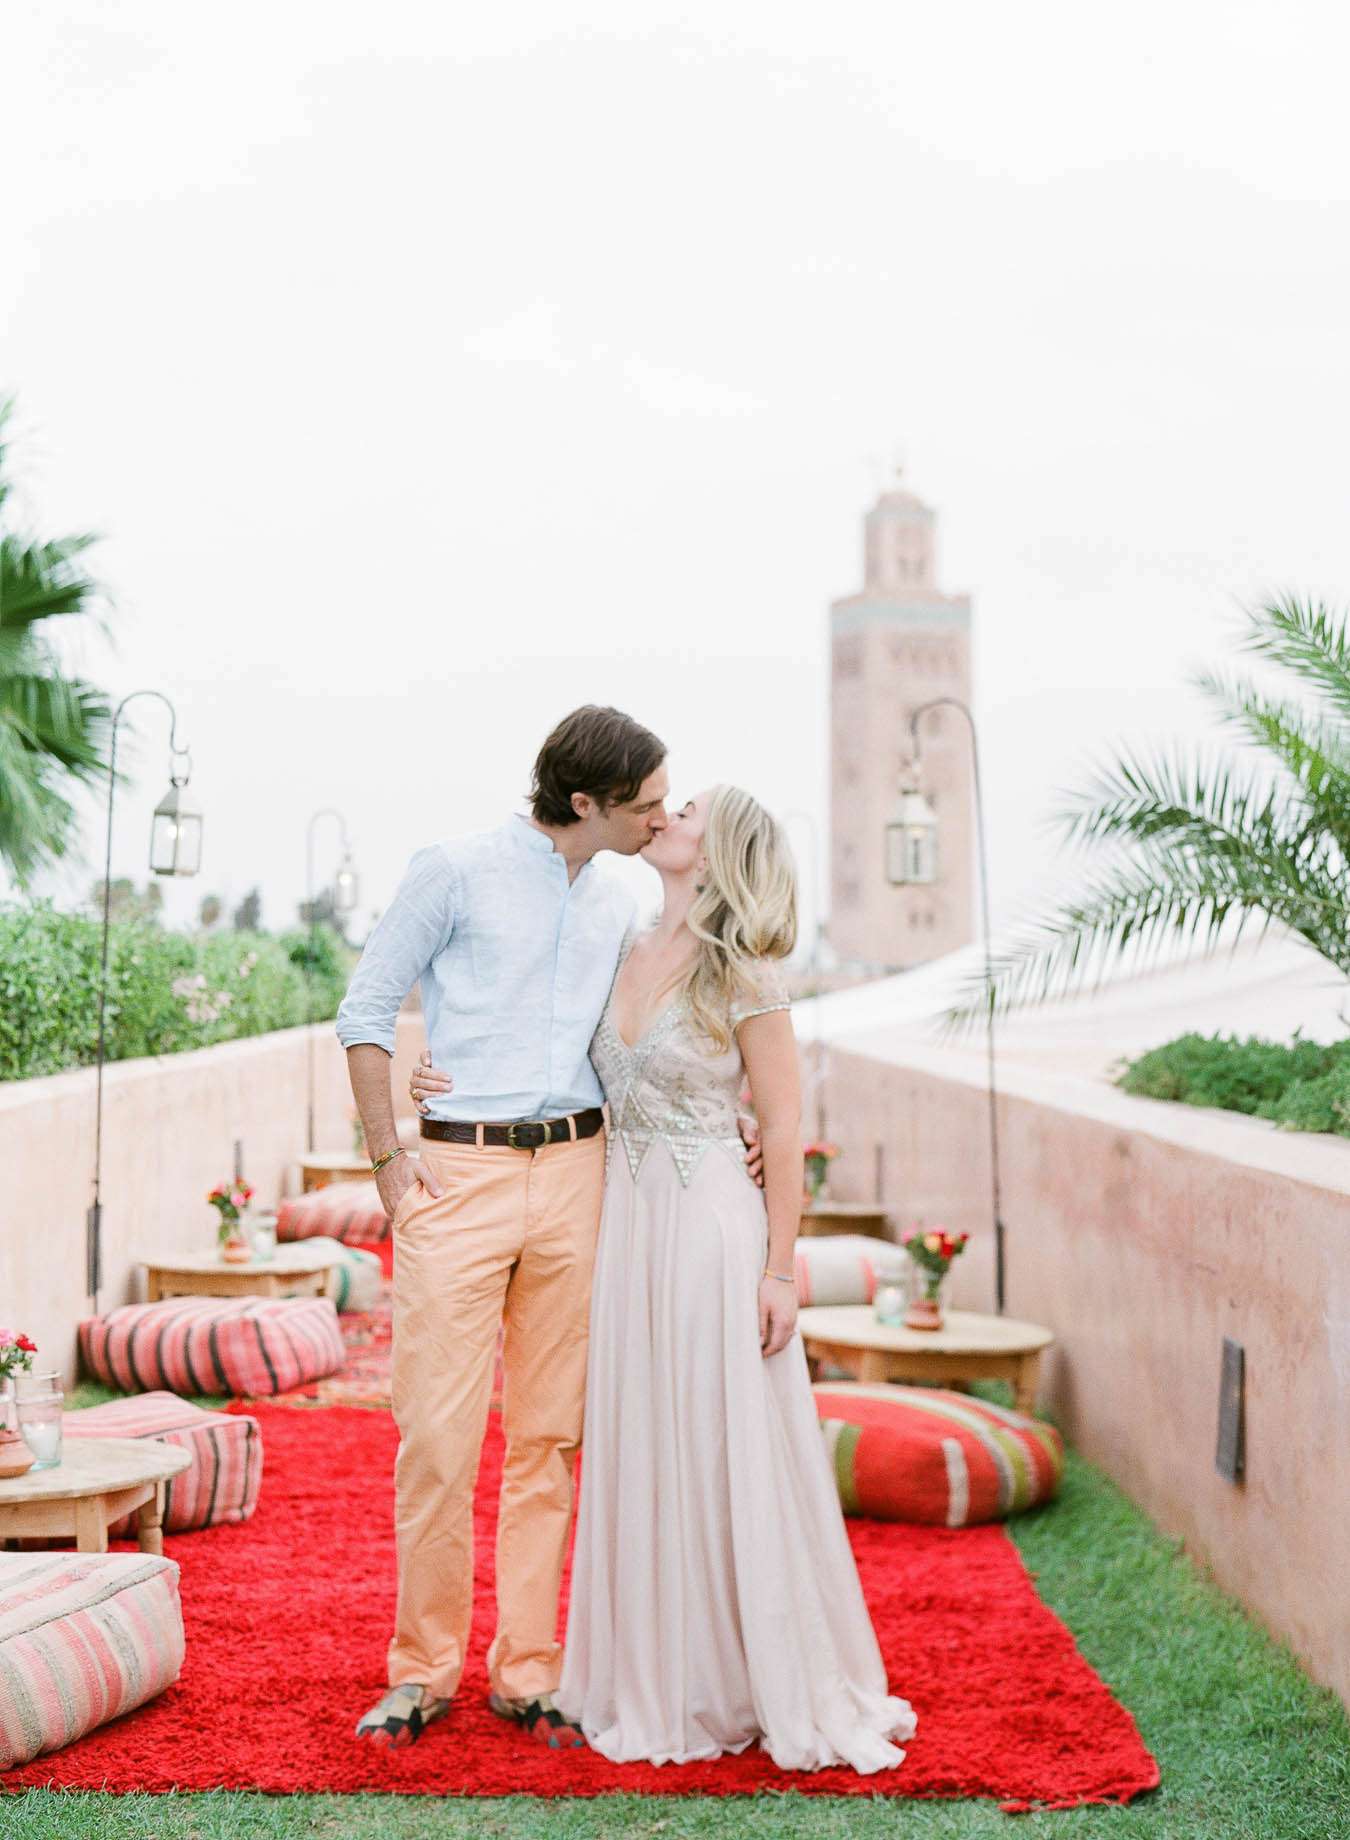 Marrakech-Destination-Wedding-Photographer-Morocco